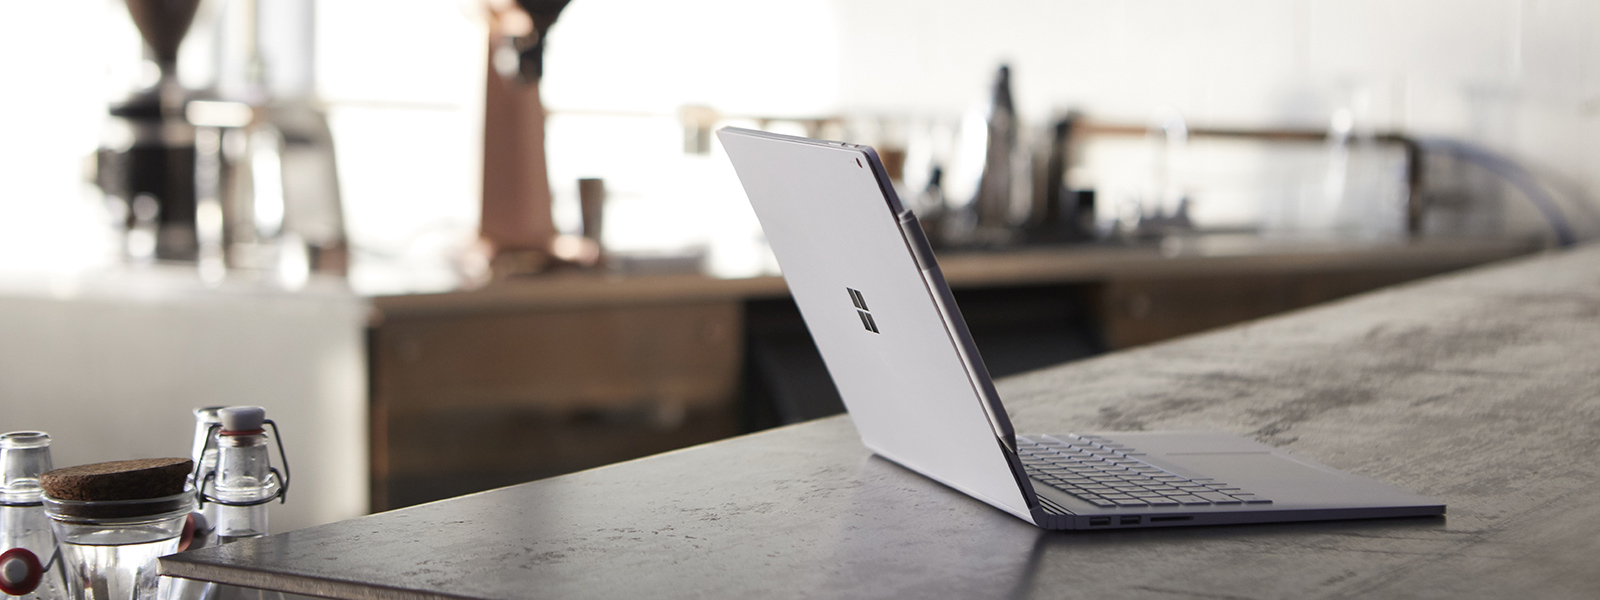 Surface Book 2 with Surface Pen on a table